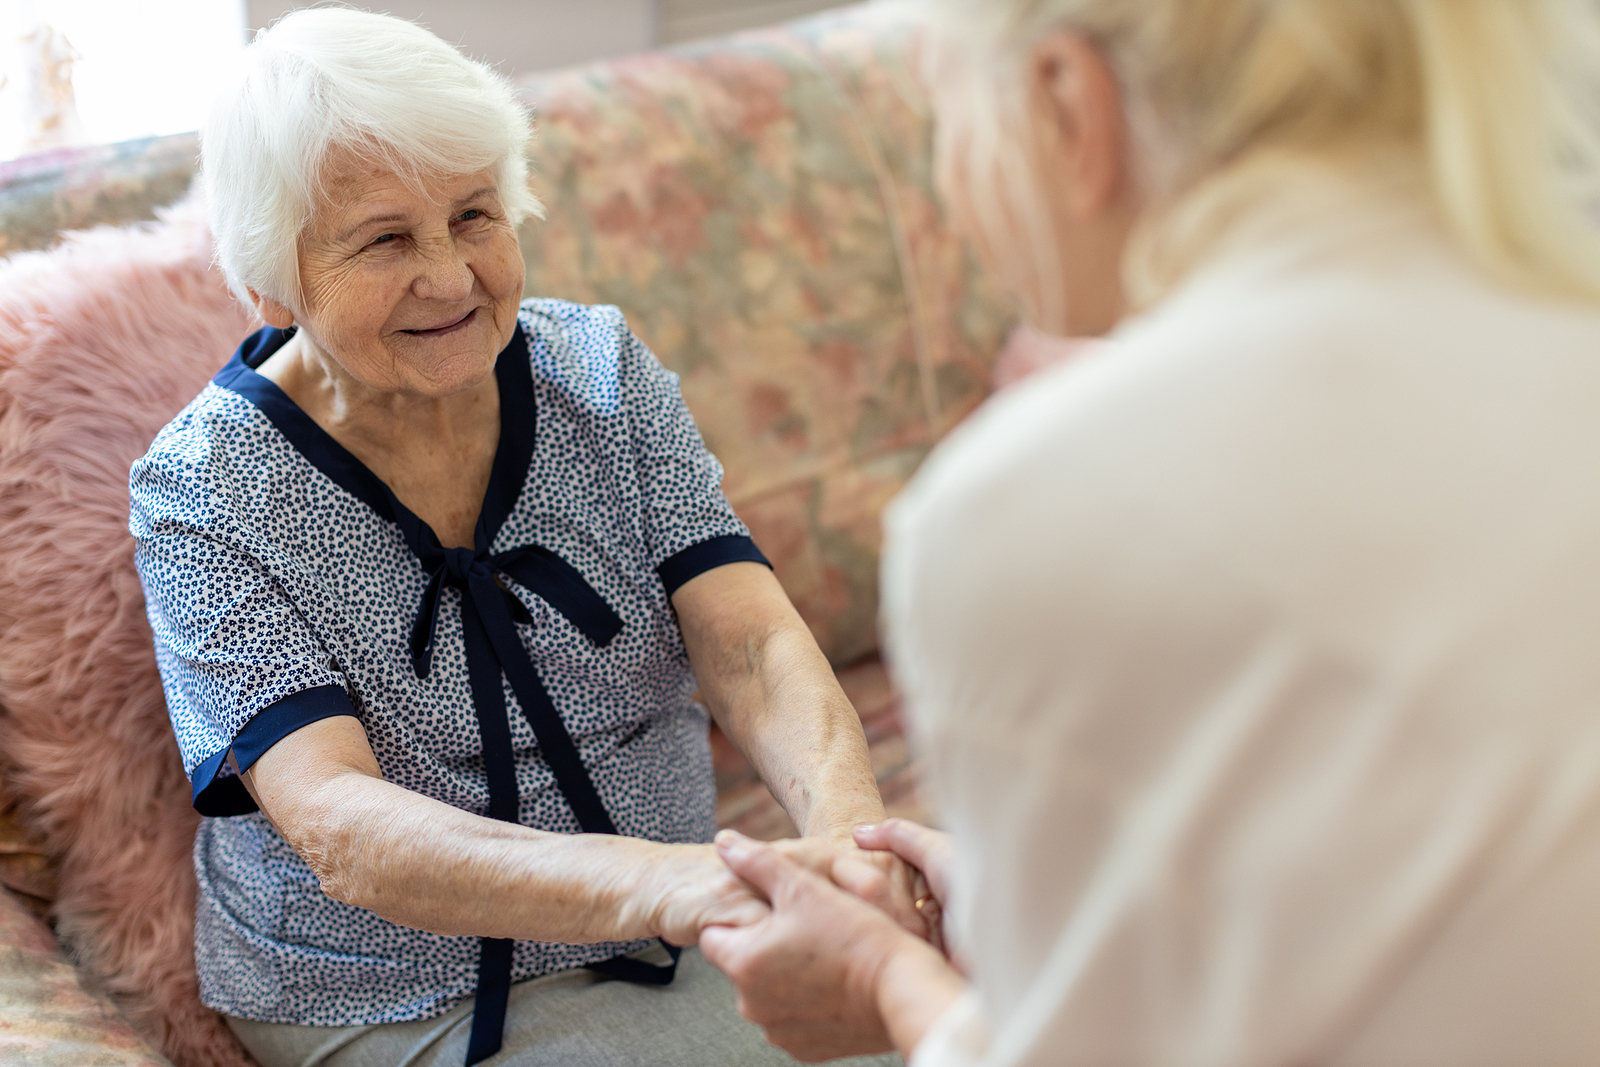 an in-home caregiver helps a senior woman stand up.